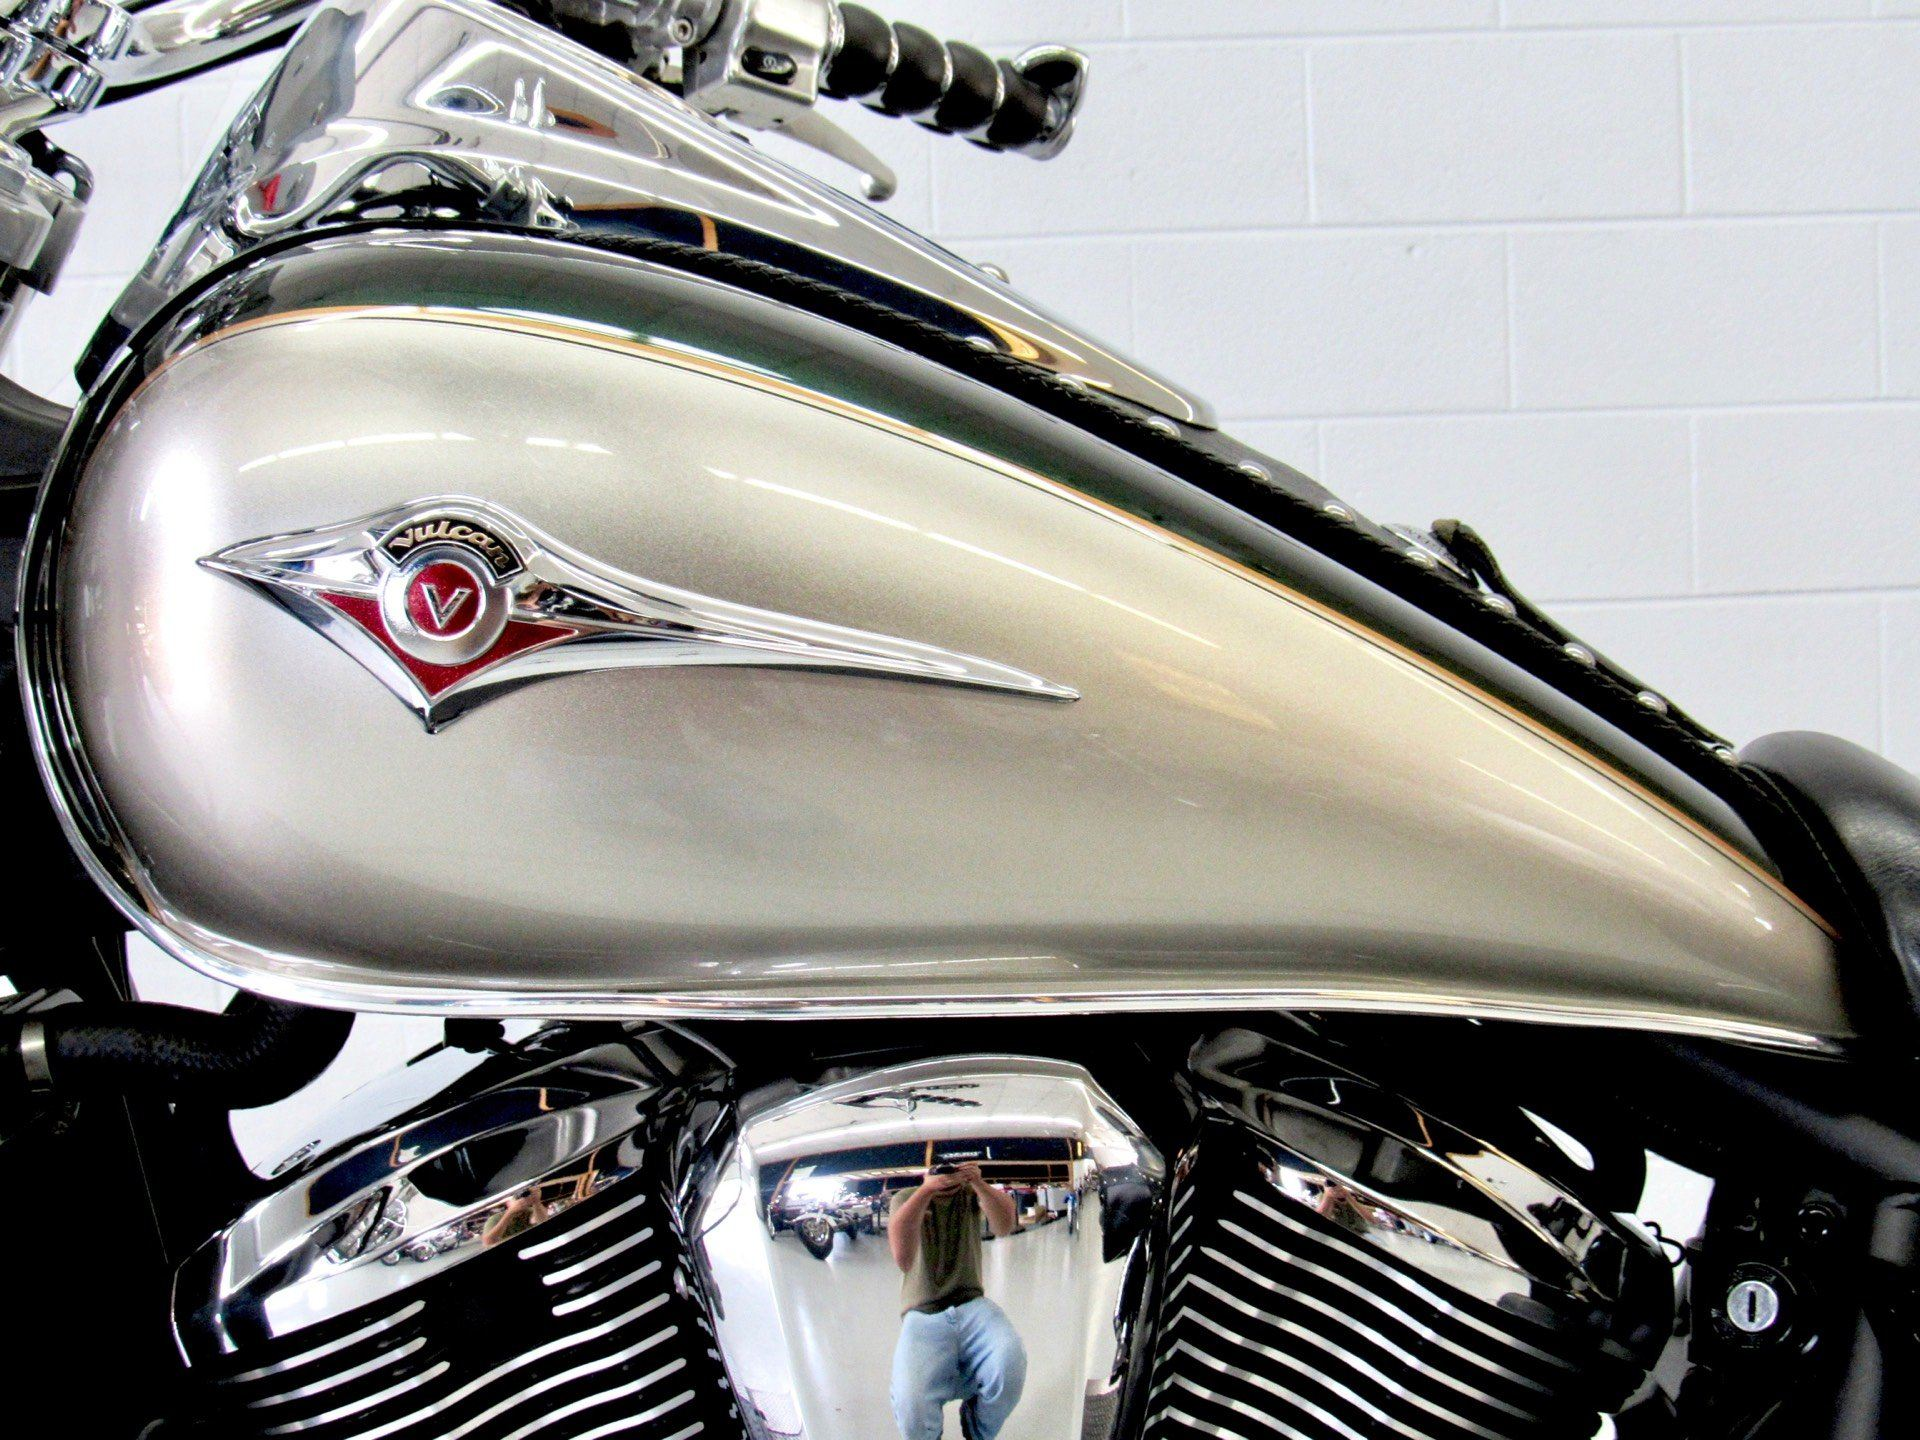 2010 Kawasaki Vulcan® 900 Classic LT in Fredericksburg, Virginia - Photo 18